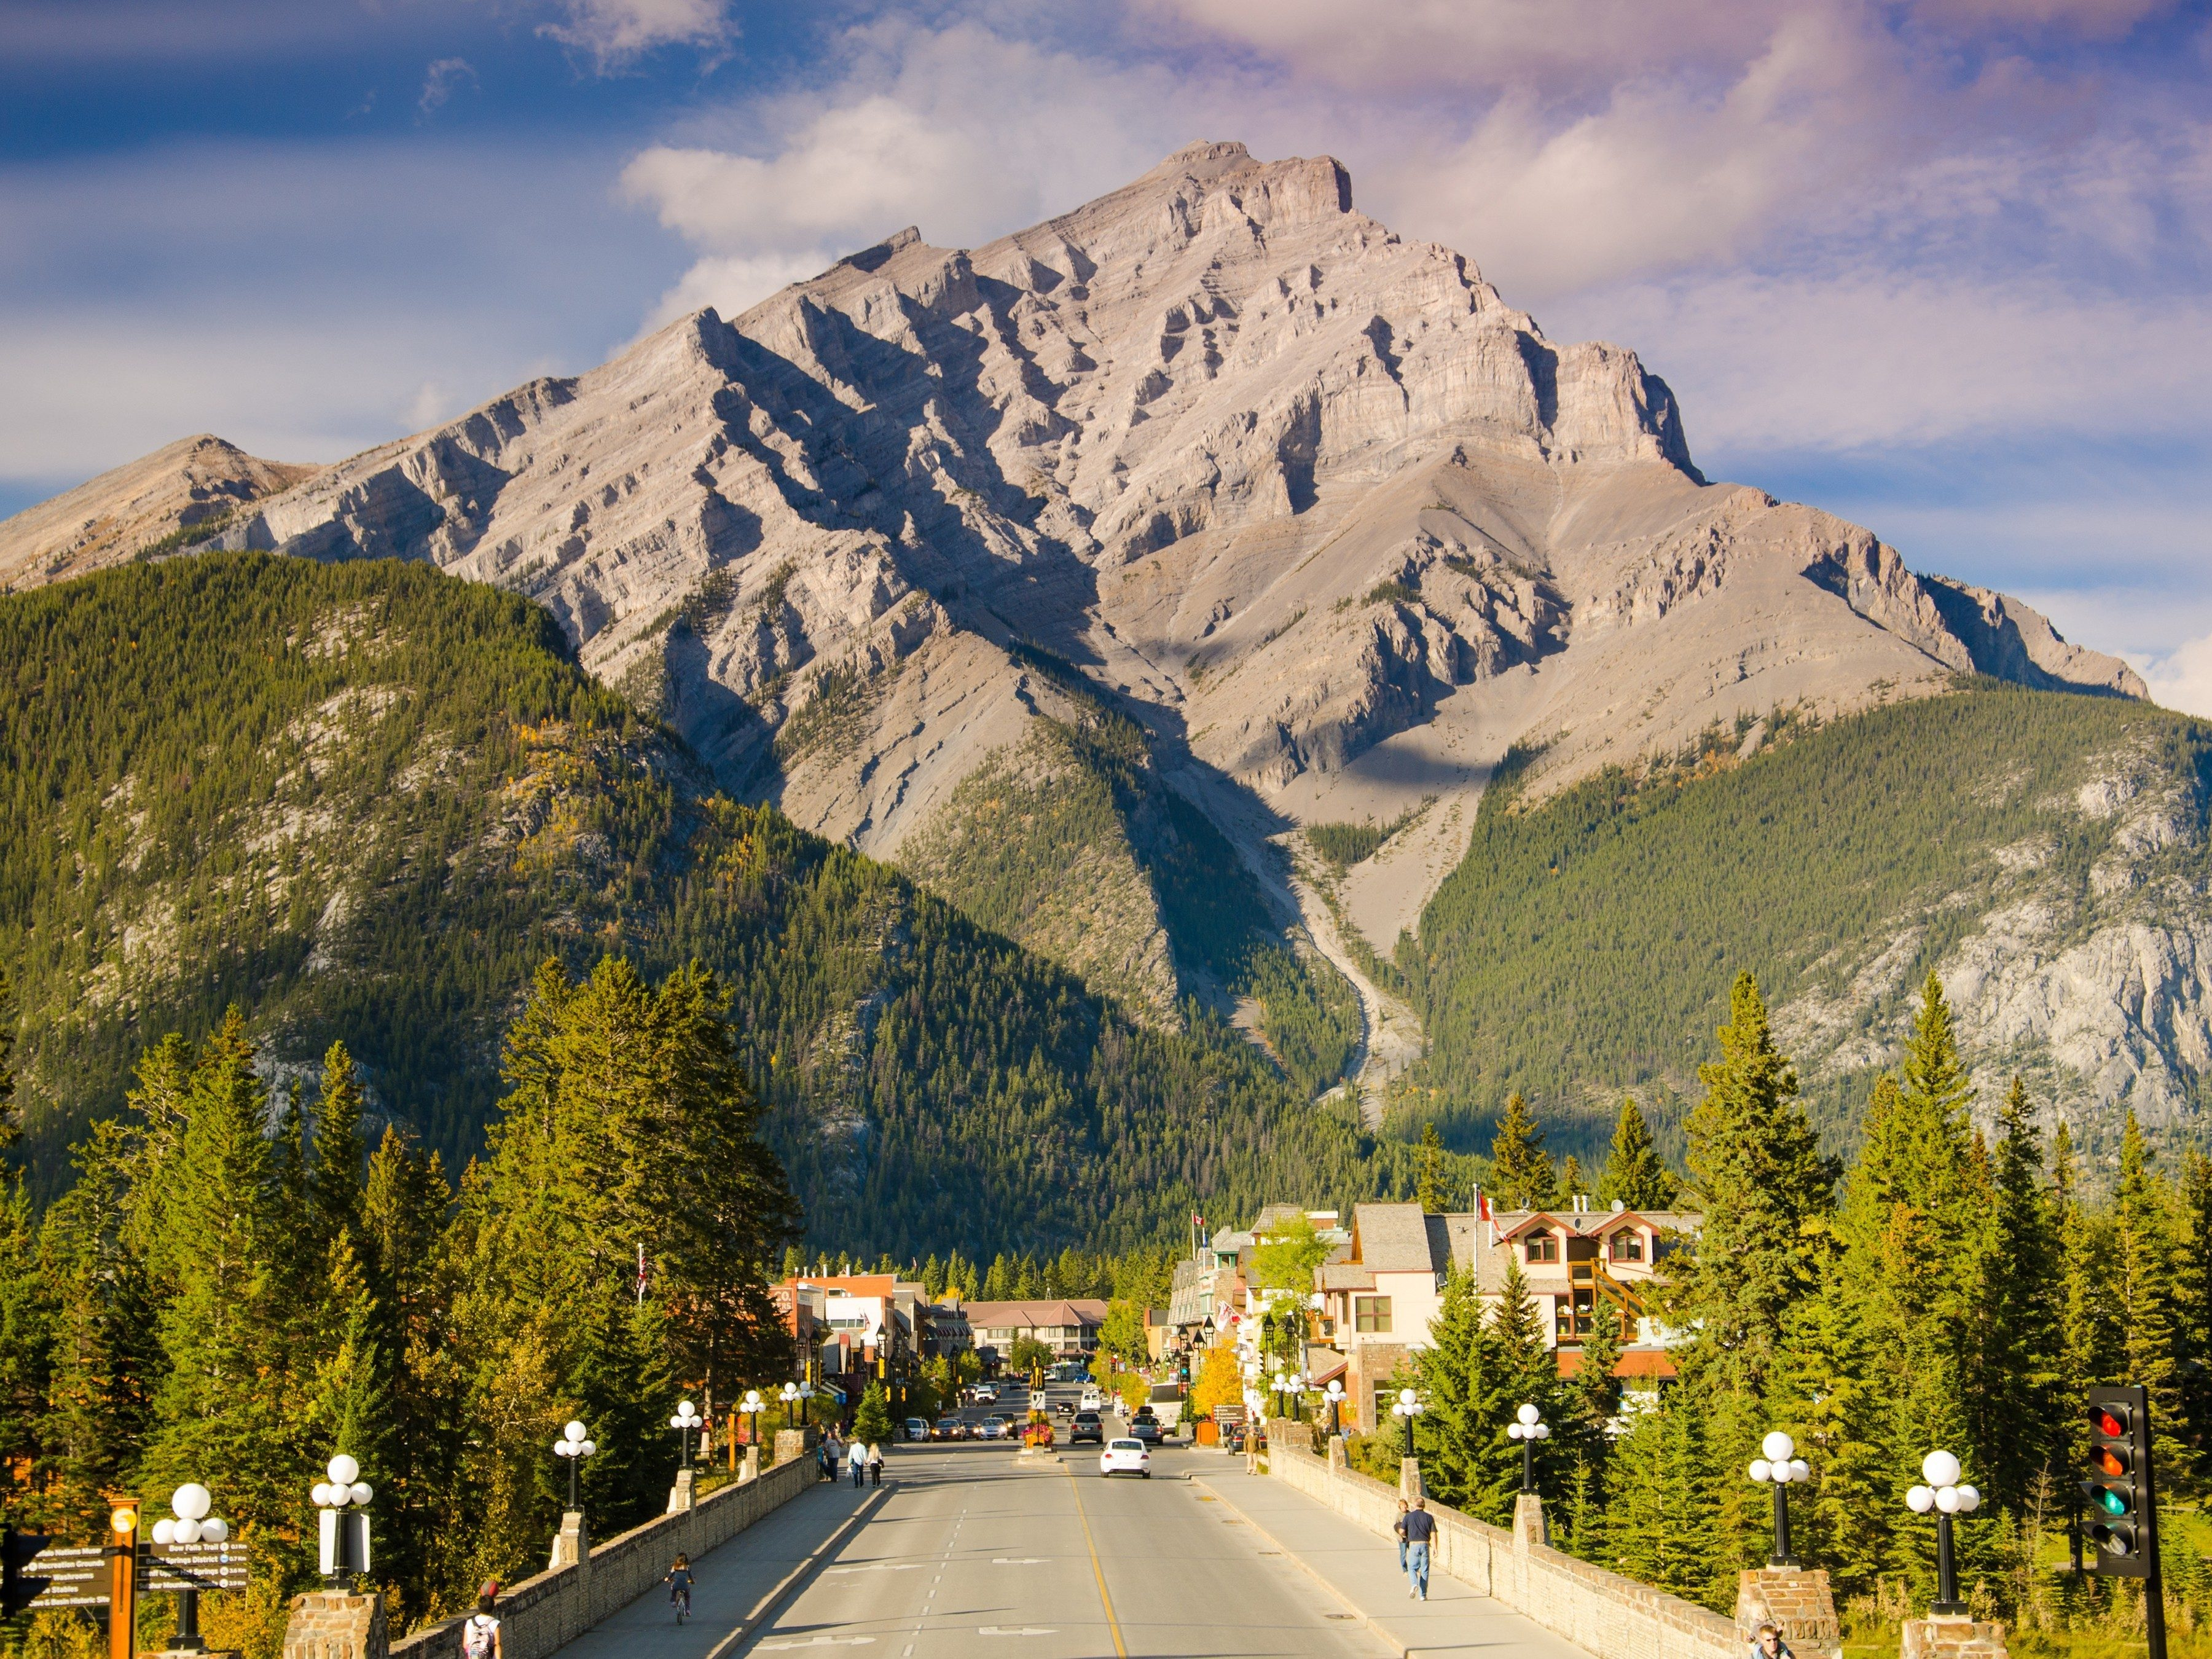 Top Sightseeing Attractions in Banff, Alberta